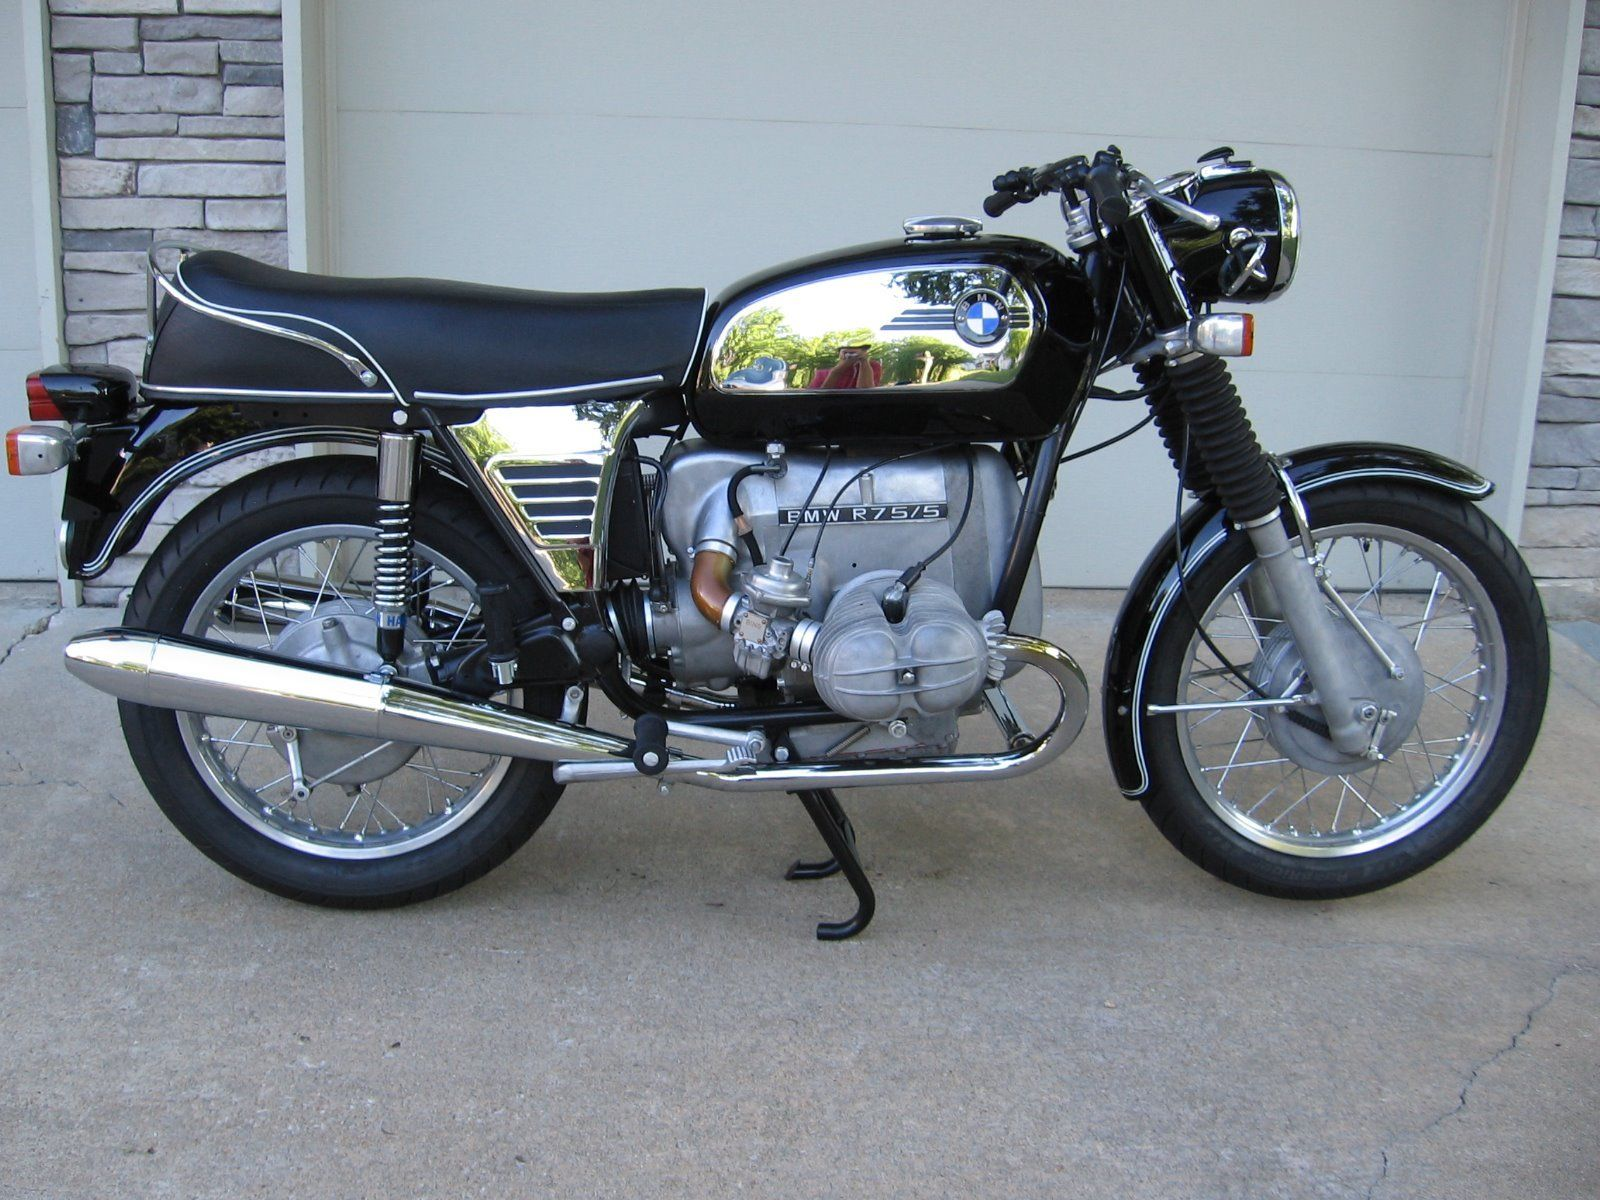 Restored Bmw R75 5 1972 Photographs At Classic Bikes Restored Bikes Restored